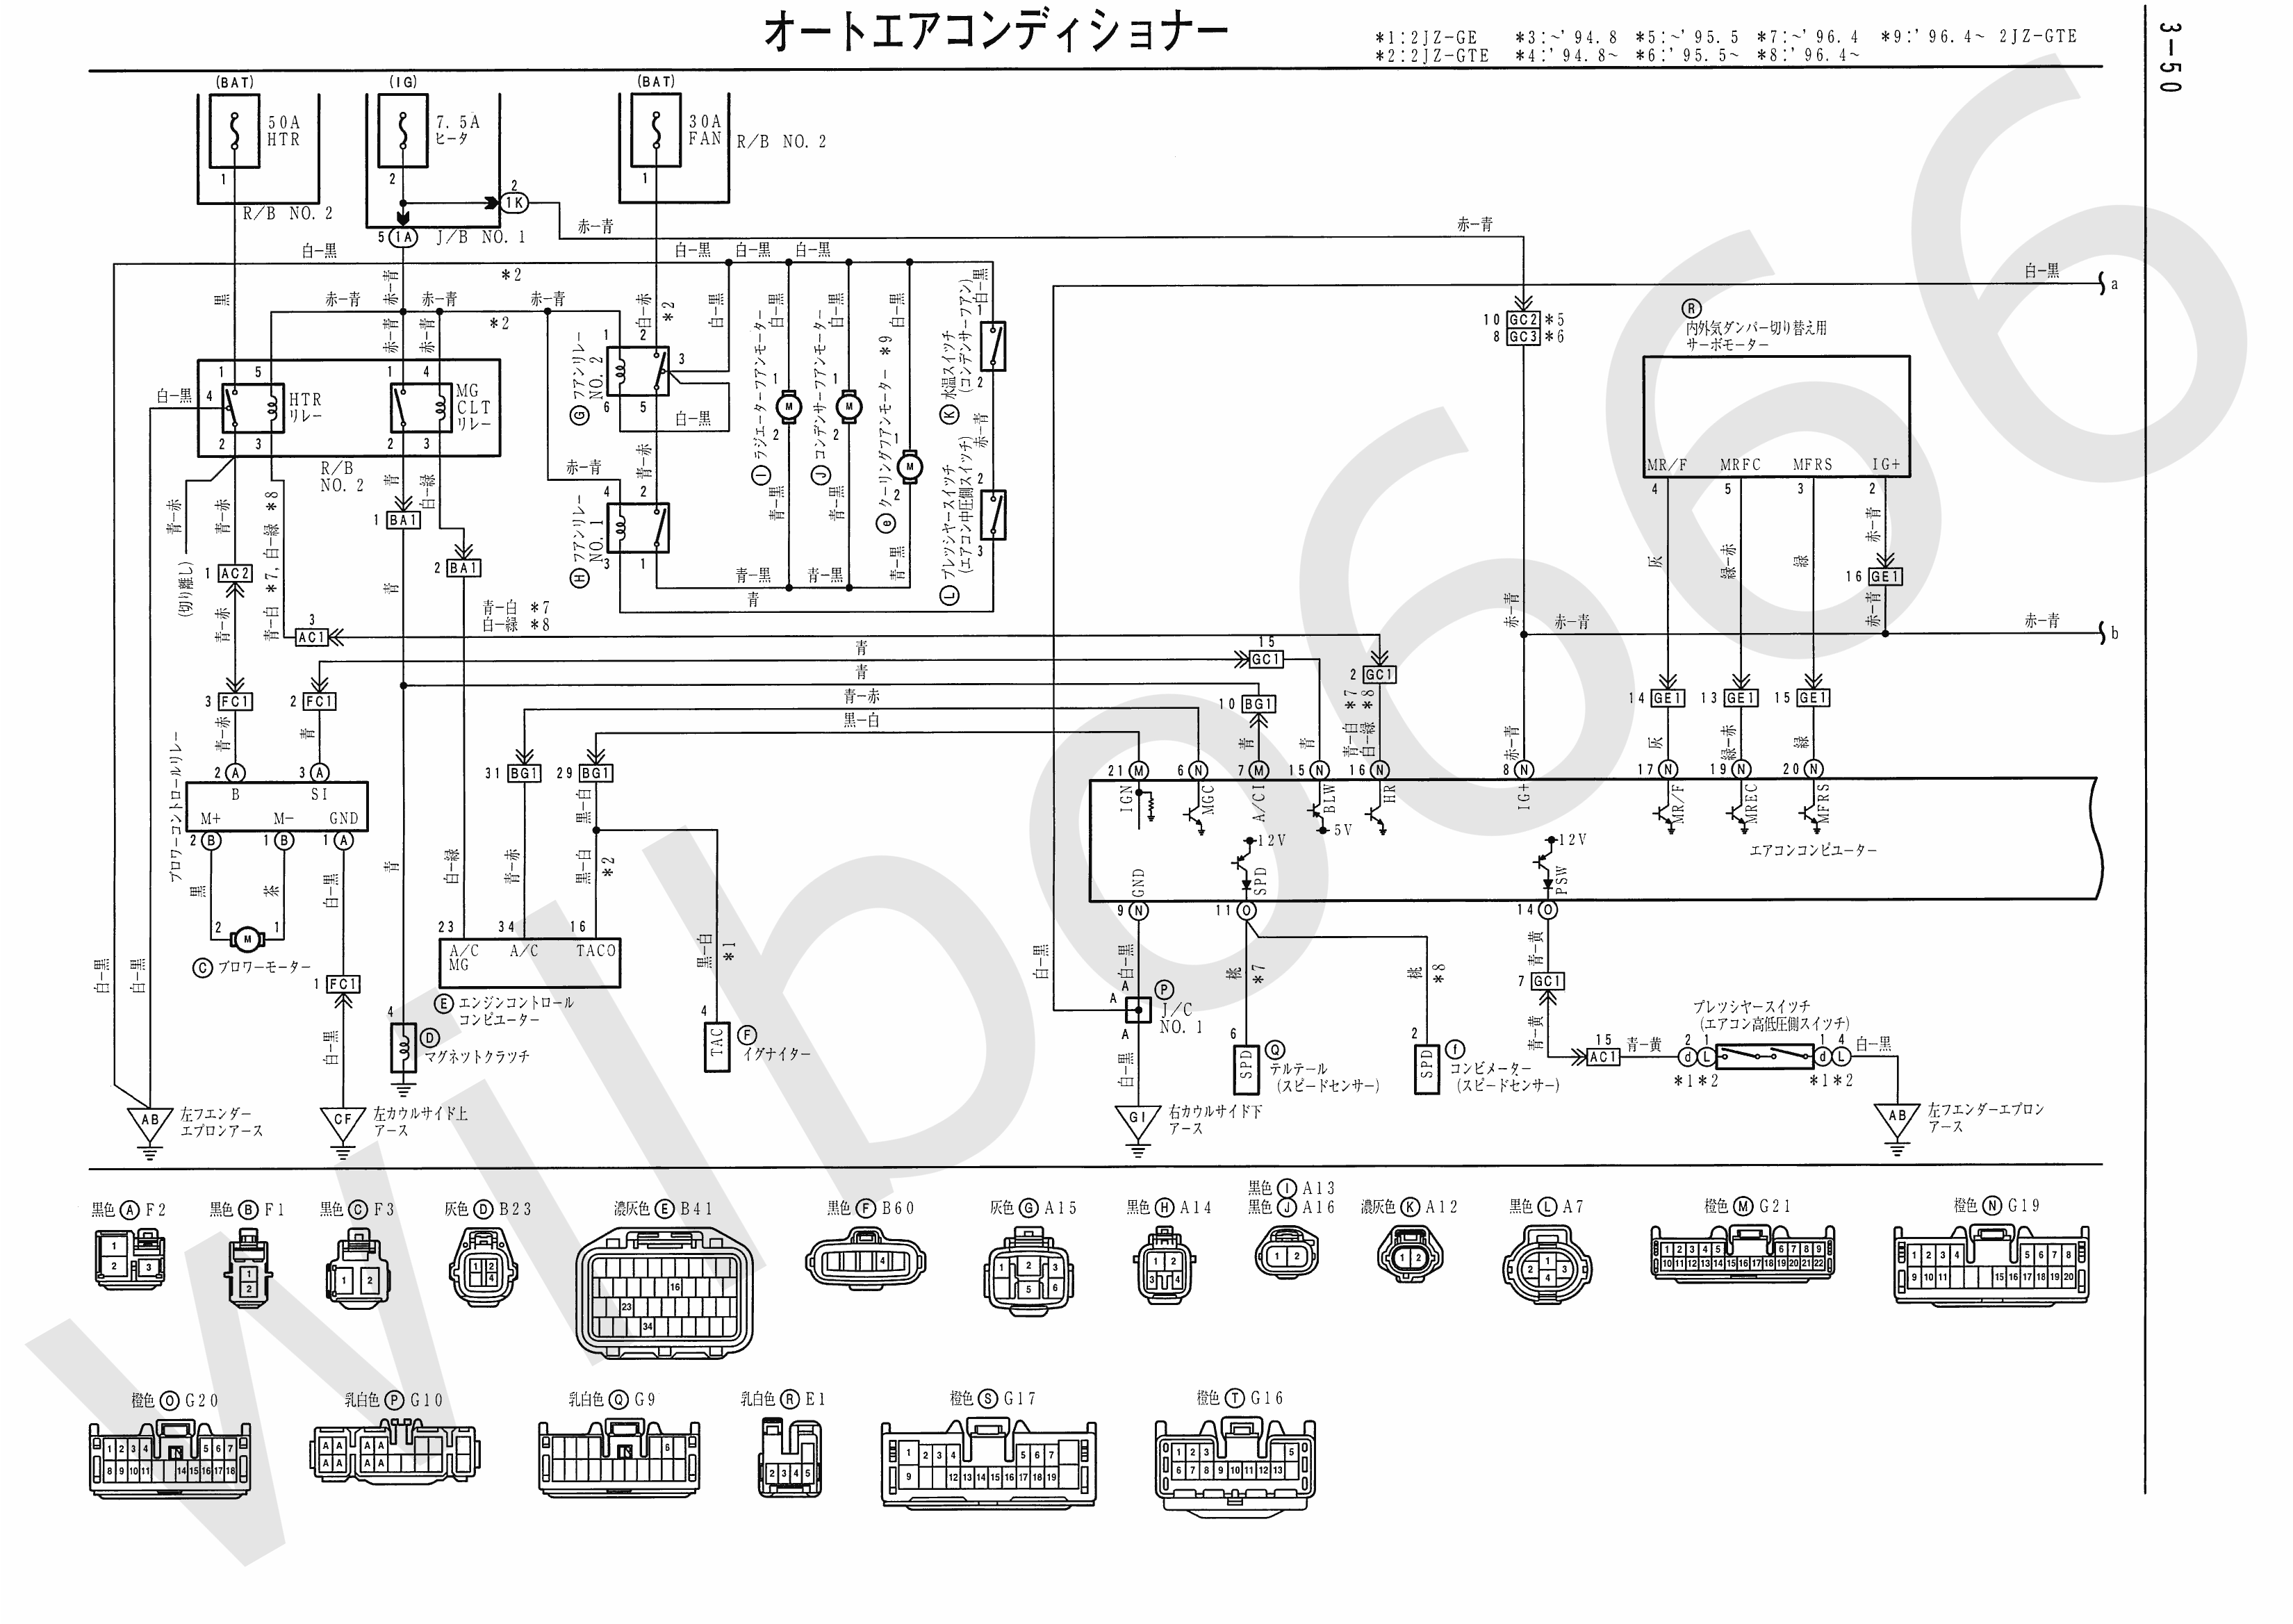 7Mgte Wiring Diagram from wilbo666.pbworks.com